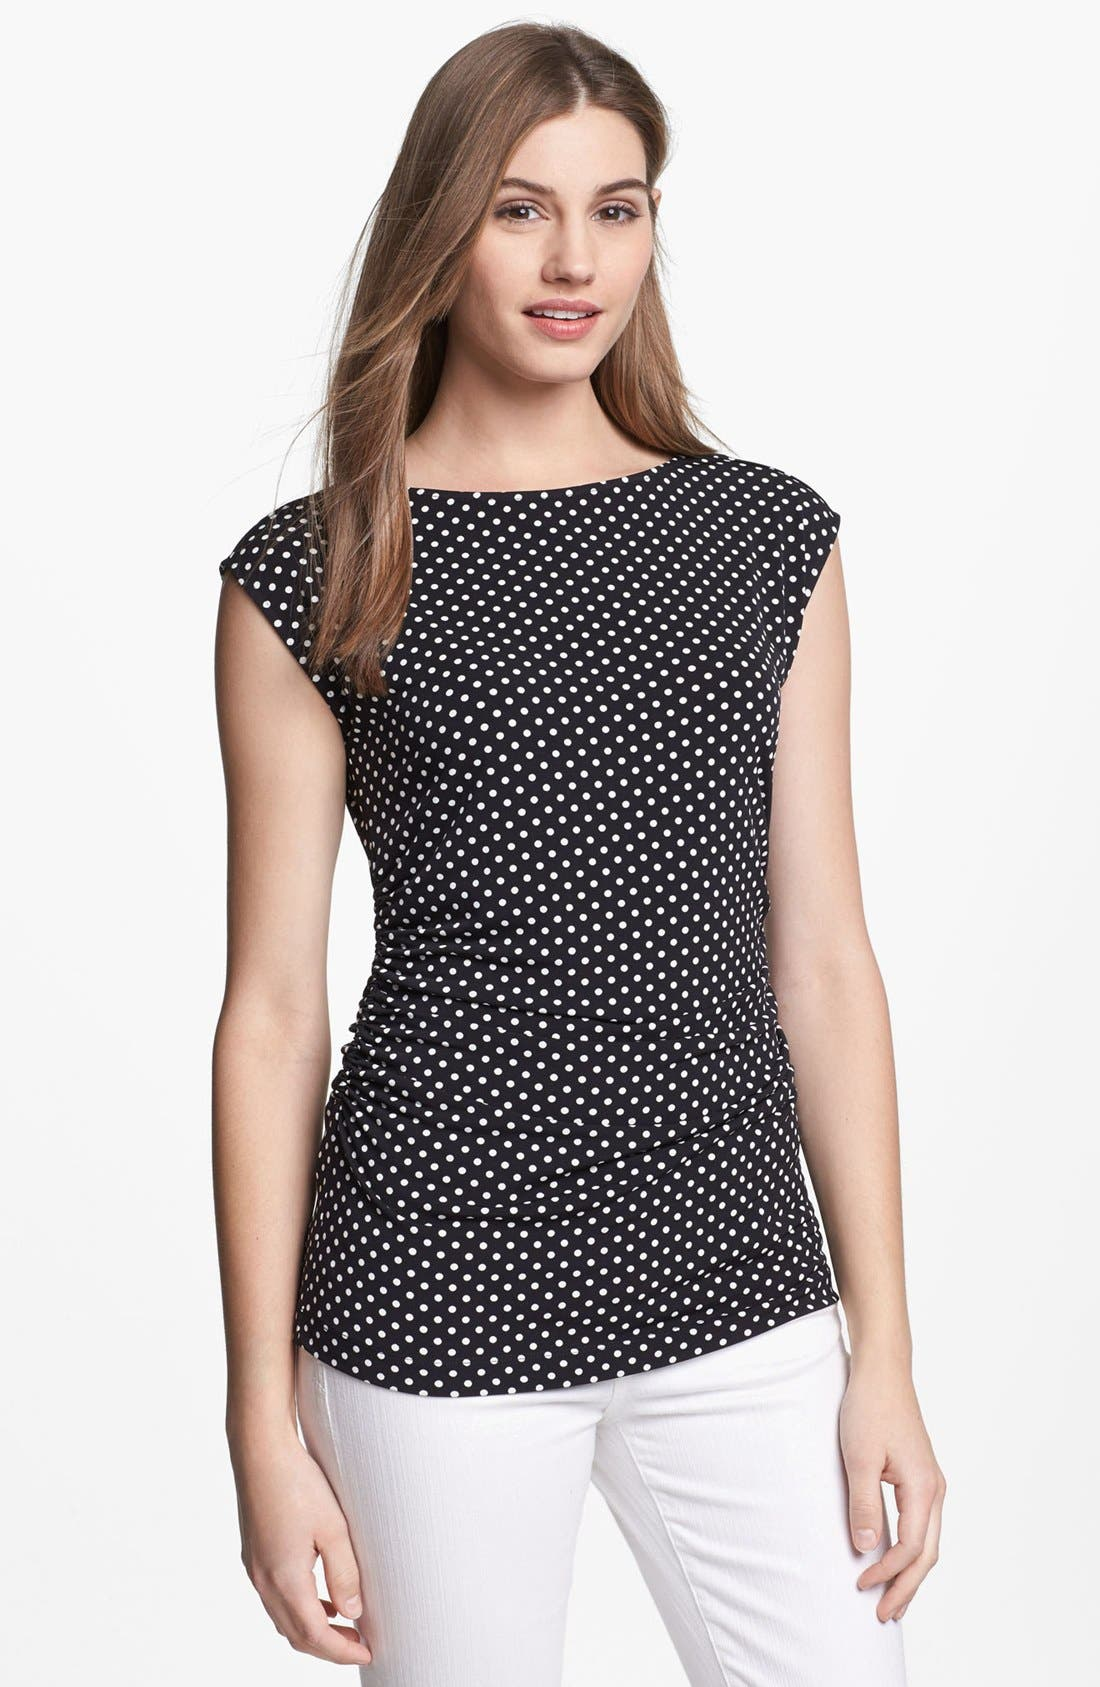 Alternate Image 1 Selected - Vince Camuto Ruched Boatneck Top (Petite)